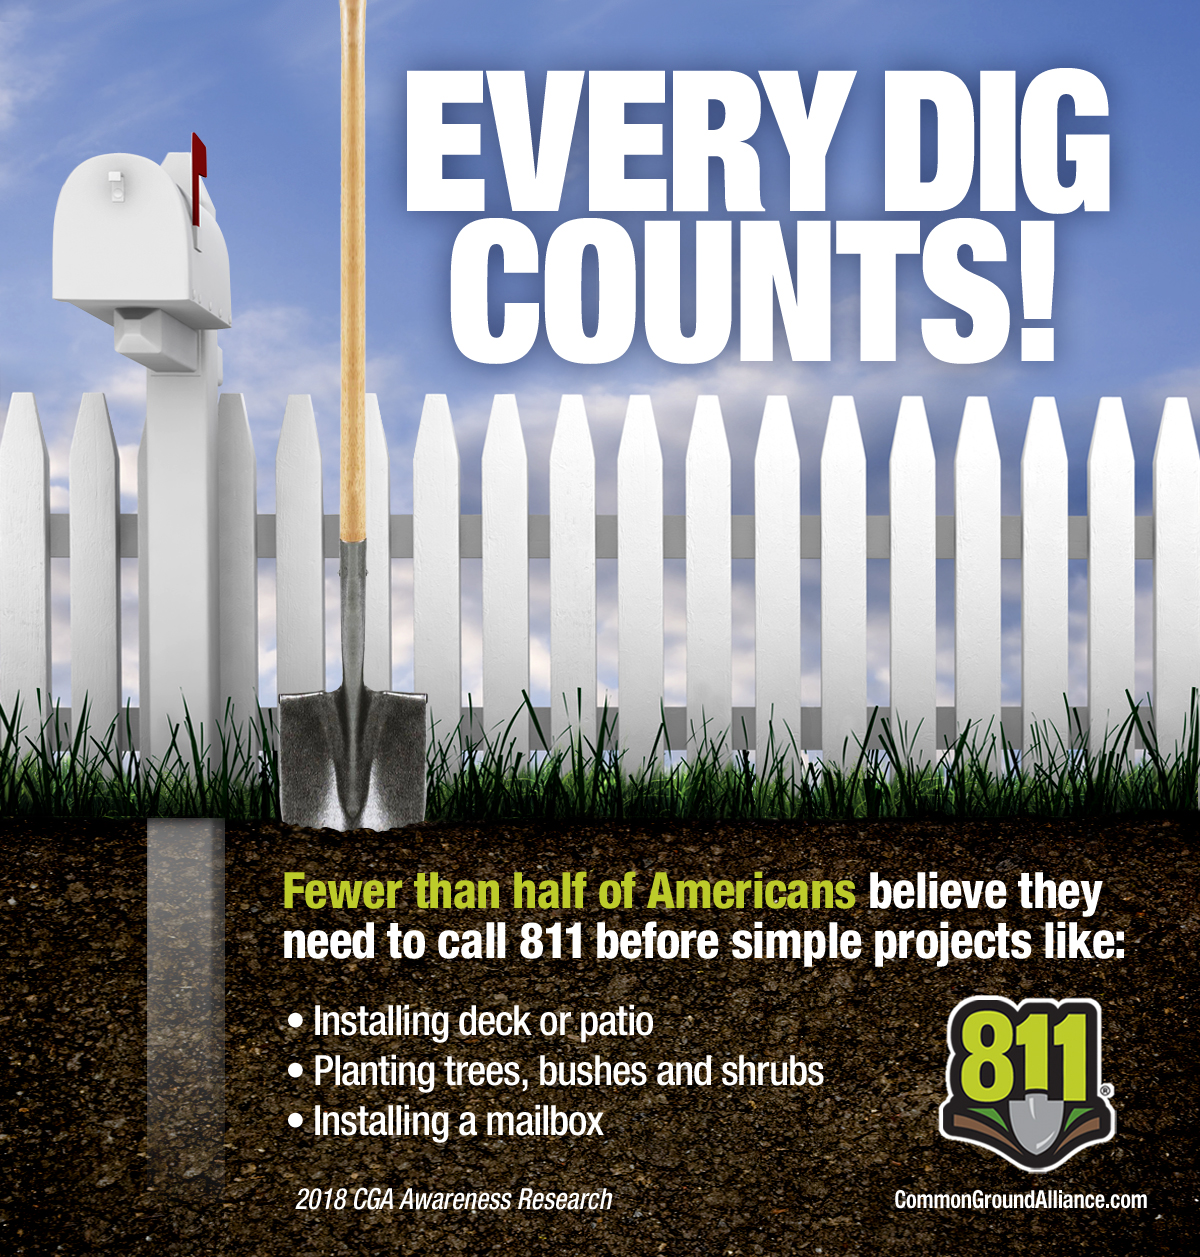 every-dig-counts-final.jpg